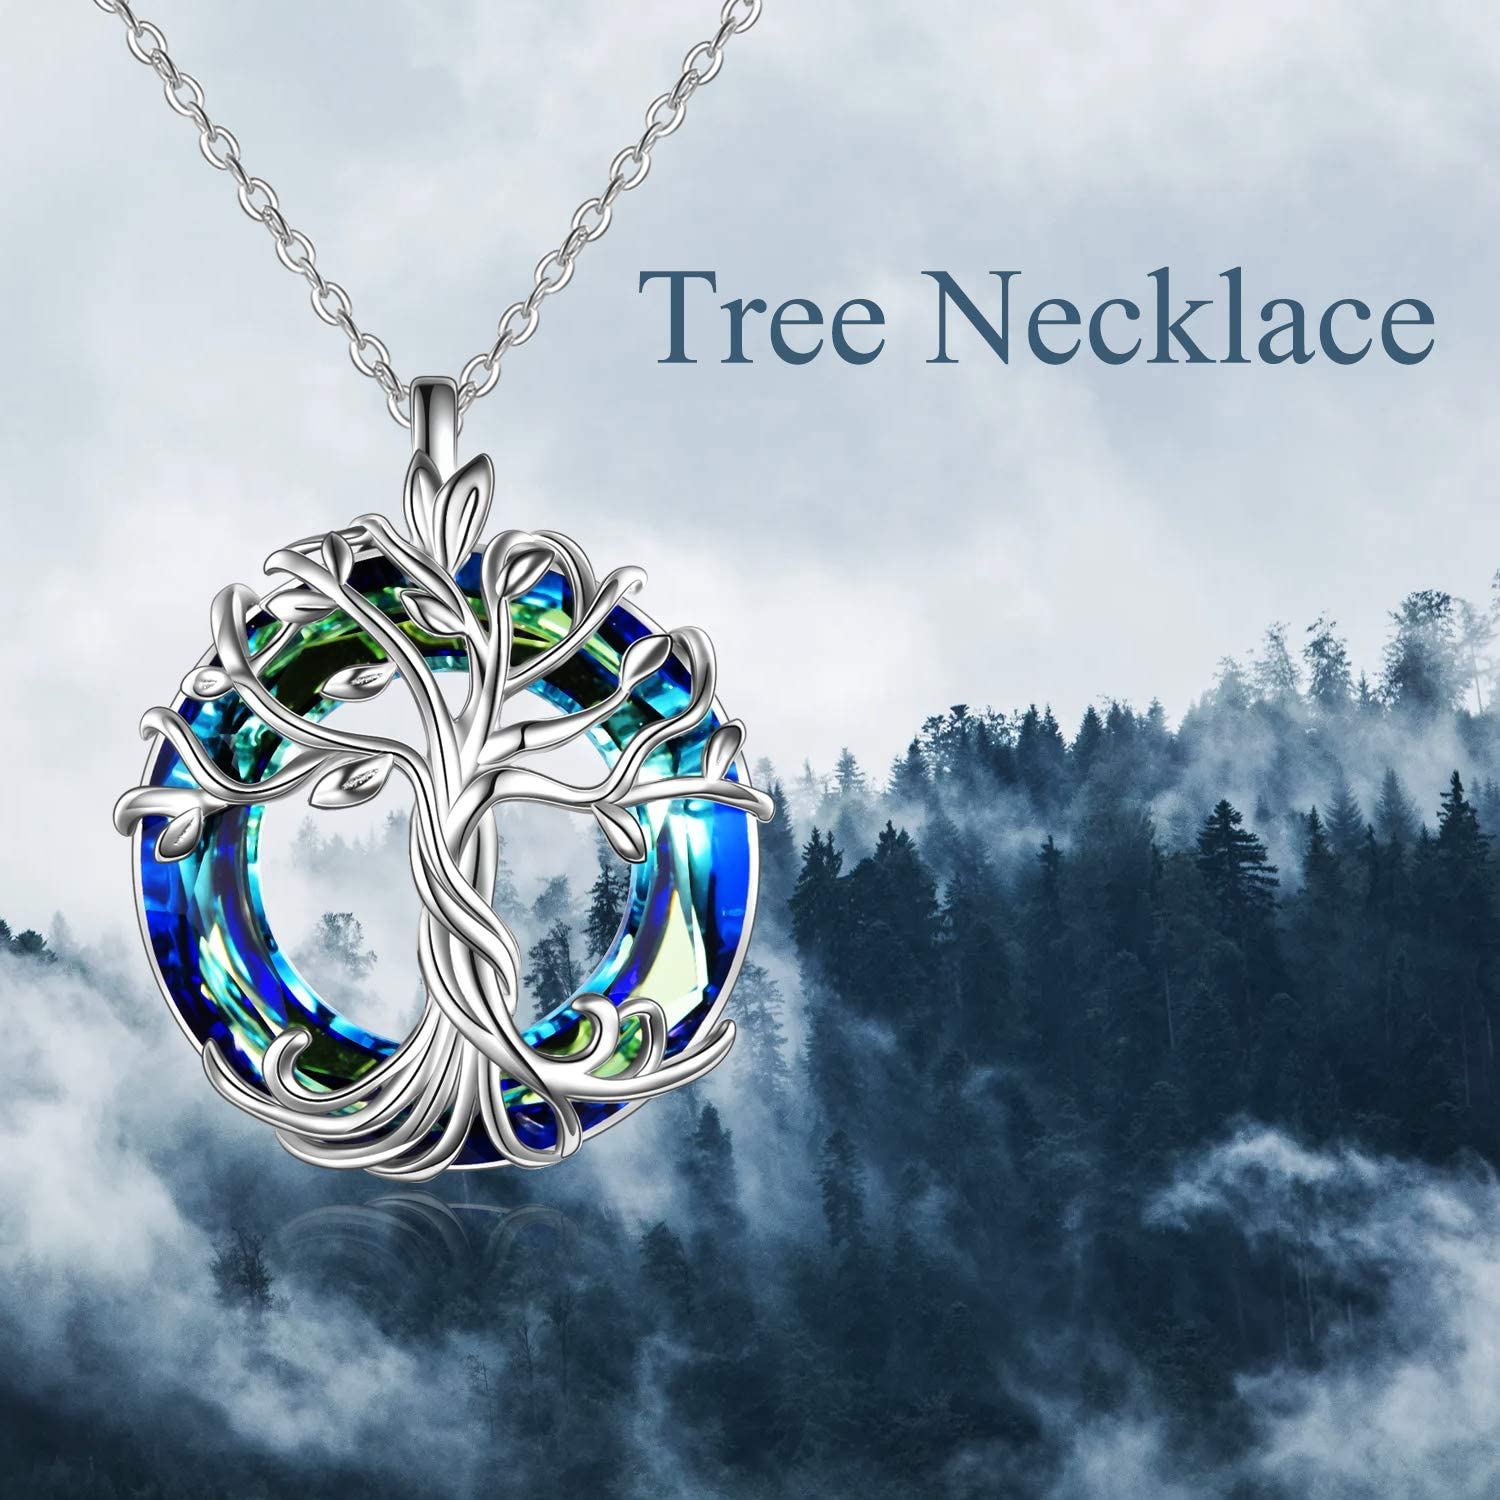 Tree of Life with Blue Circle Crystal Pendant Necklace Jewelry Gifts for Mom Women Girls Friend